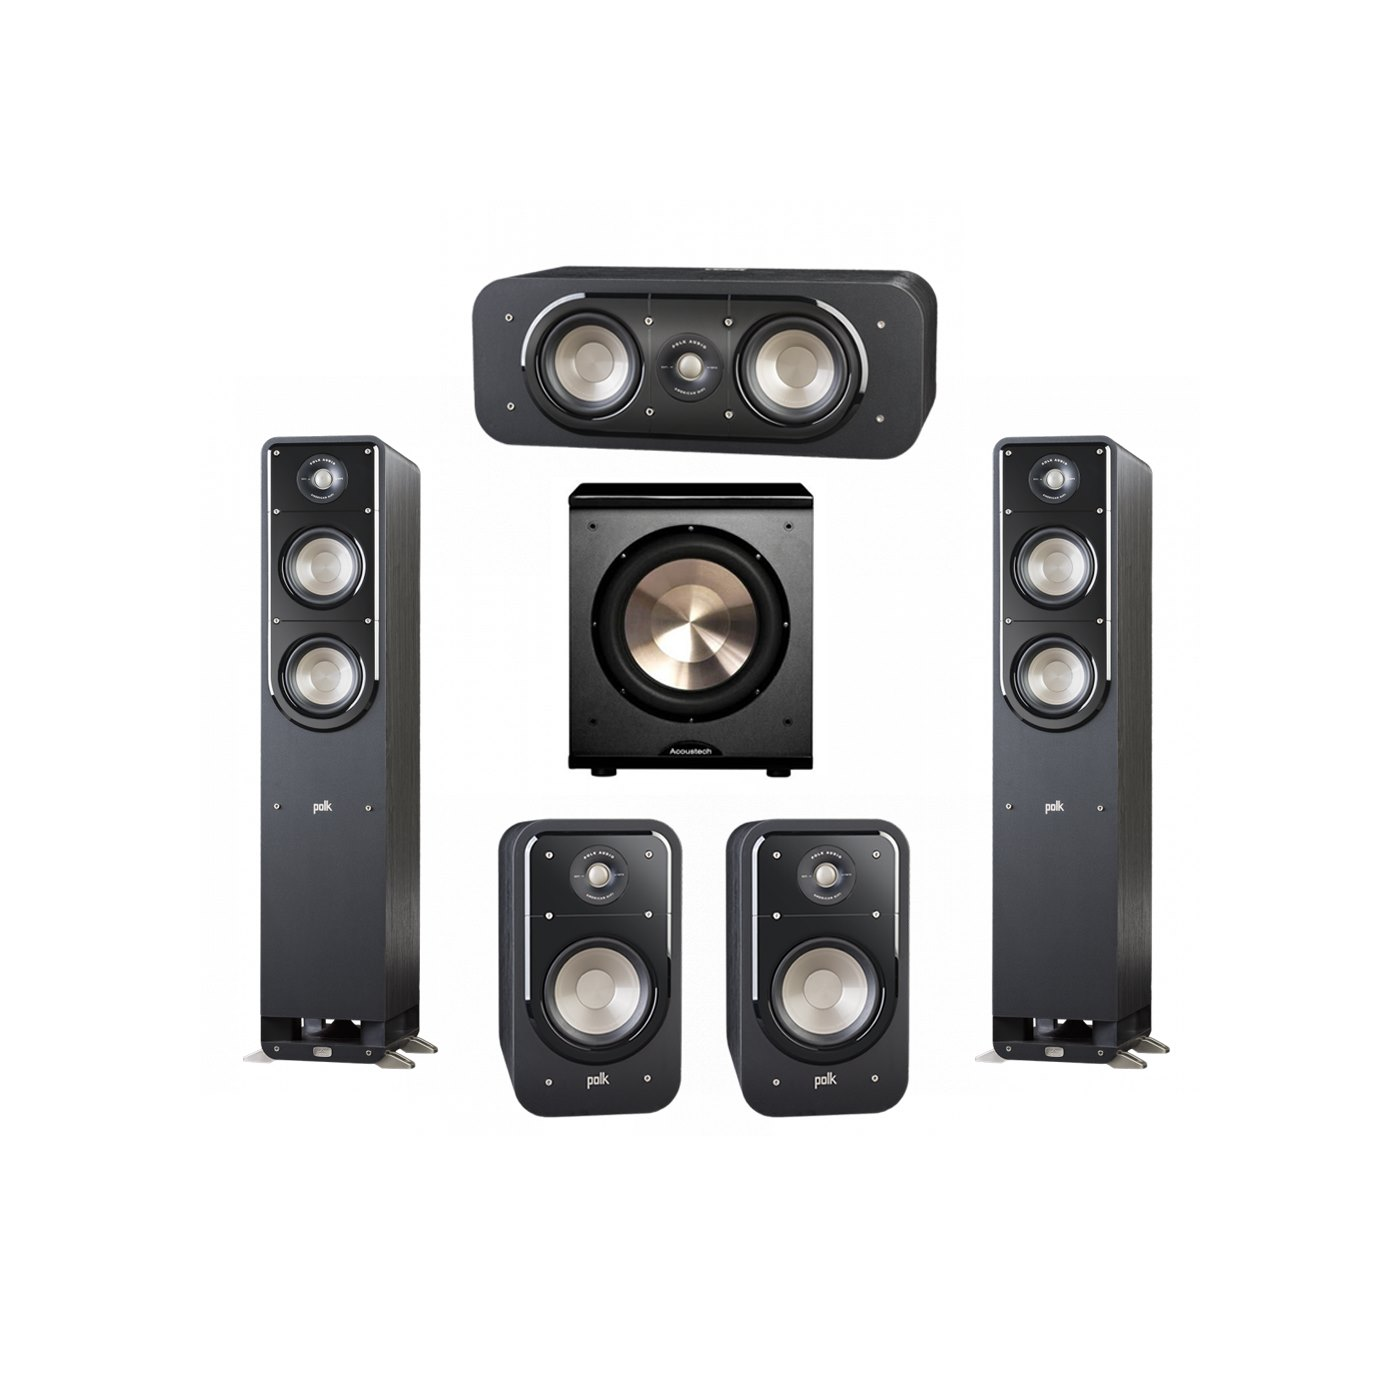 Polk Audio Signature 5.1 System with 2 S50 Tower Speaker, 1 Polk S30 Center Speaker, 2 Polk S20 Bookshelf Speaker, 1 BIC/Acoustech Platinum Series PL-200 Subwoofer